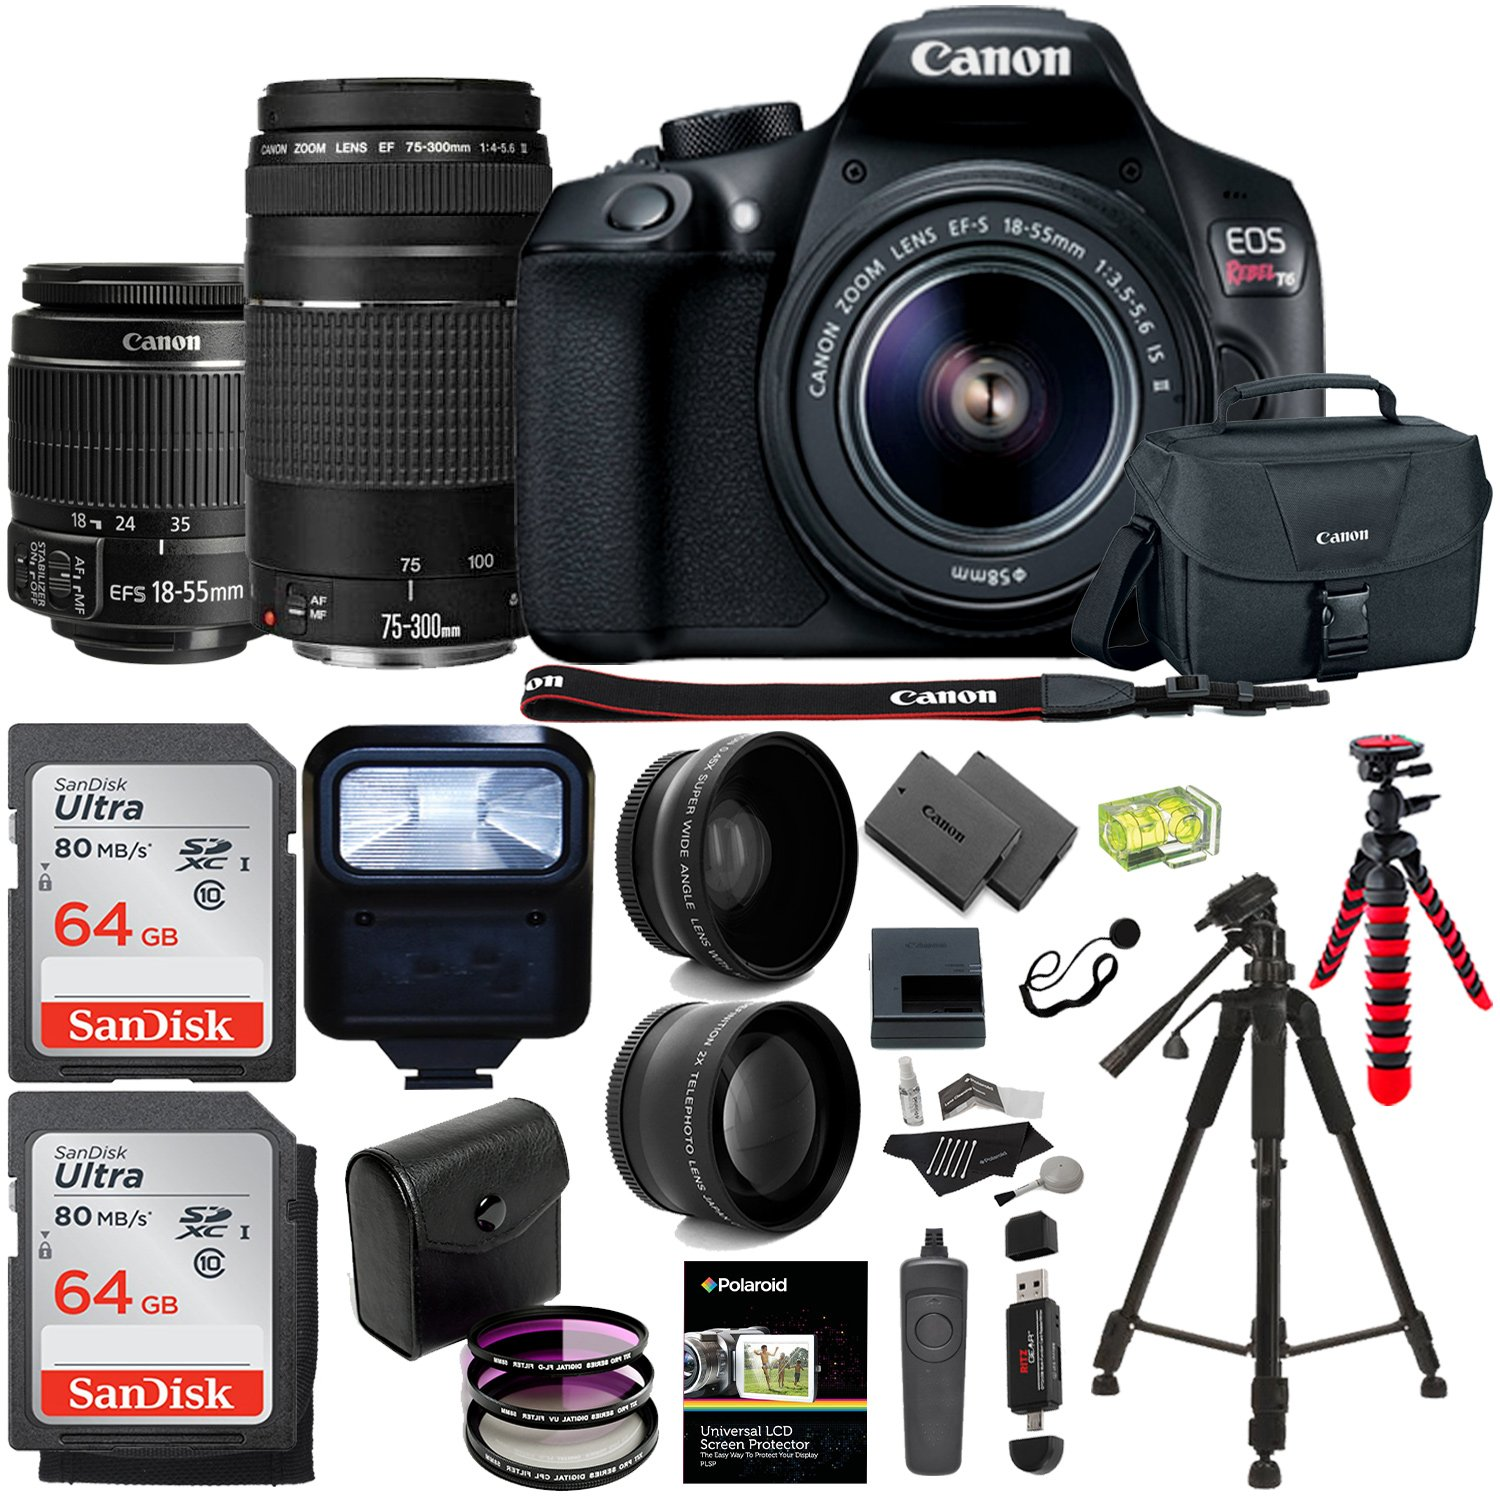 Canon EOS Rebel T6 DSLR Camera Kit, EFS 18-55mm, EF 75-300mm Zoom Lens, 128GB Sandisk Memory Cards, Polaroid .43x Super Wide Angle, 2.2X HD Telephoto Lens, Canon Bag, Tripods & Accessory Bundle by Ritz Camera